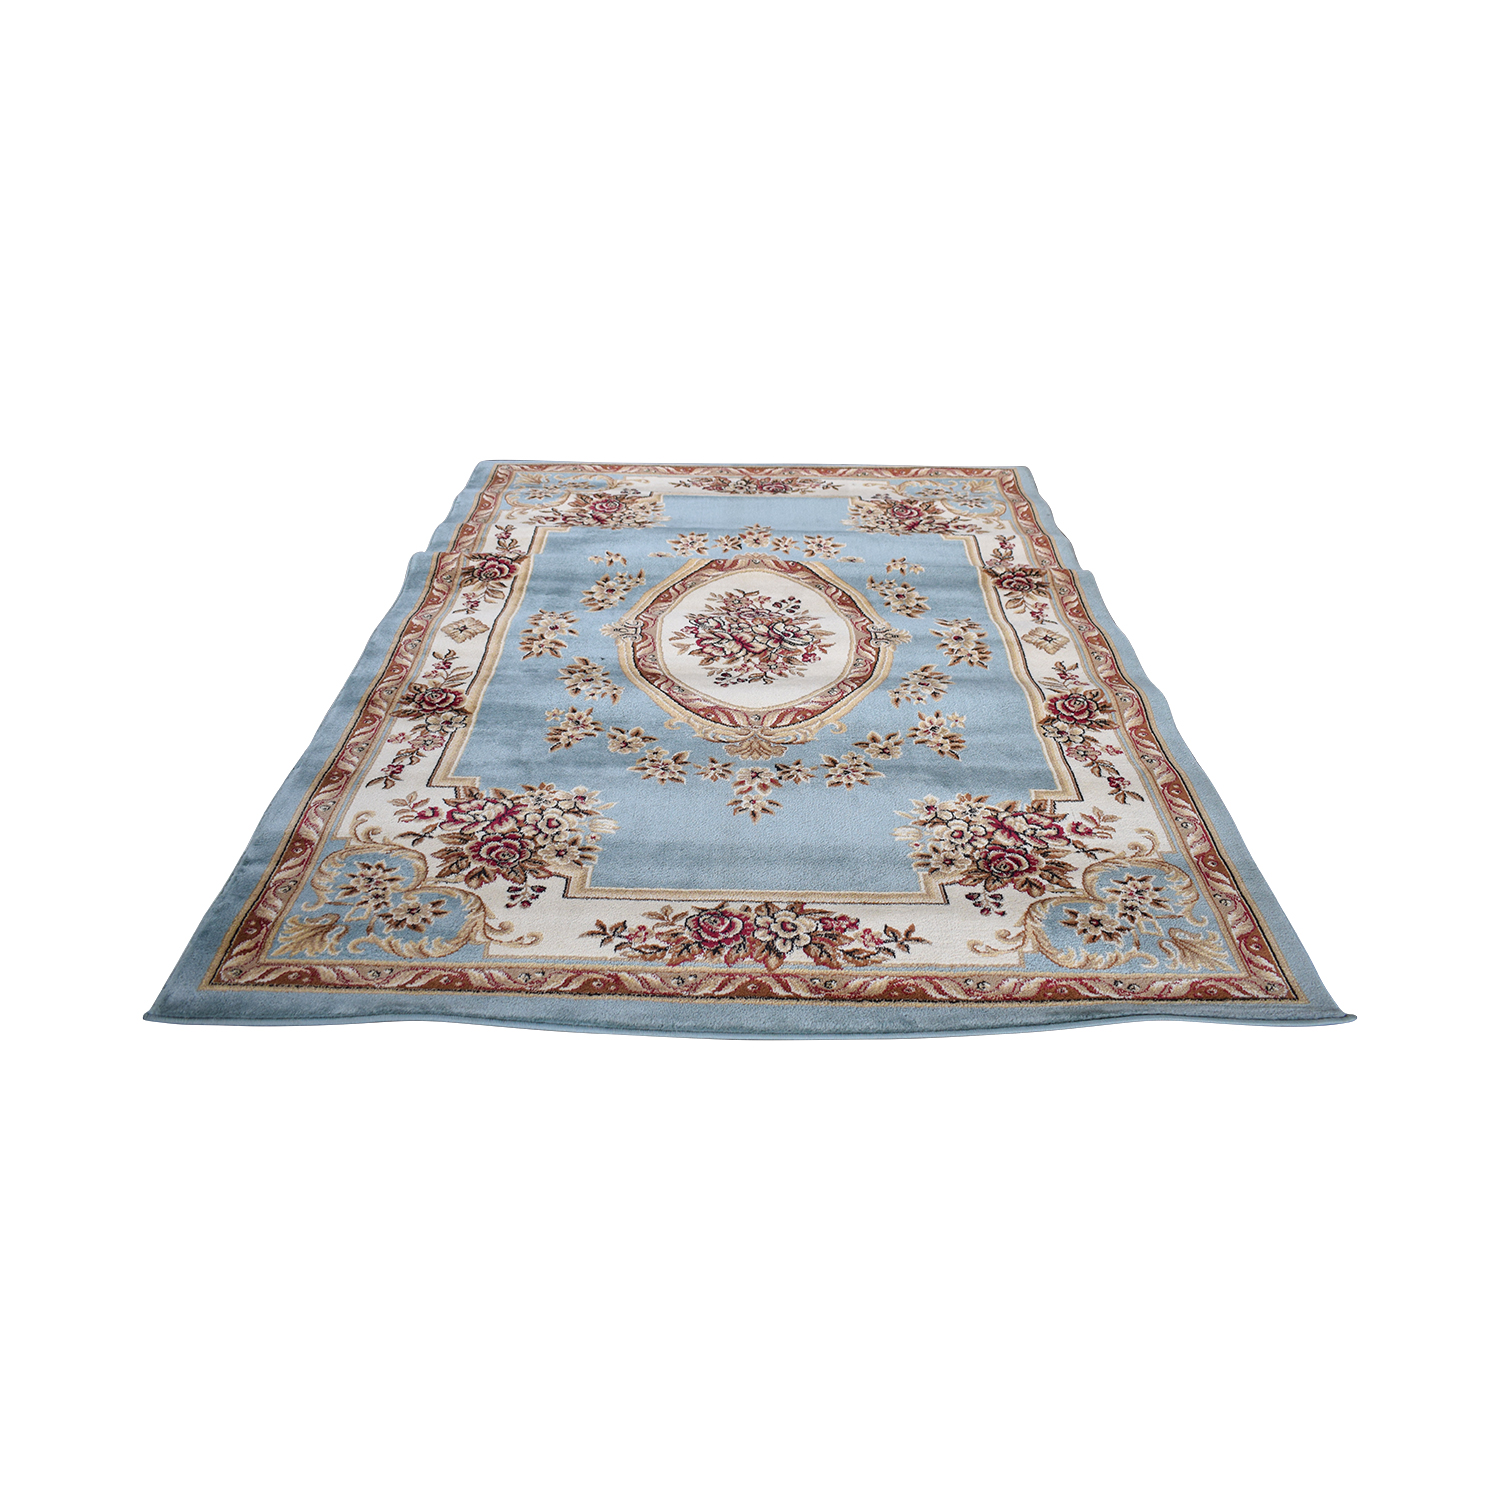 Well Woven Well Woven Timeless Le Petit Palais Blue Floral Rug nyc